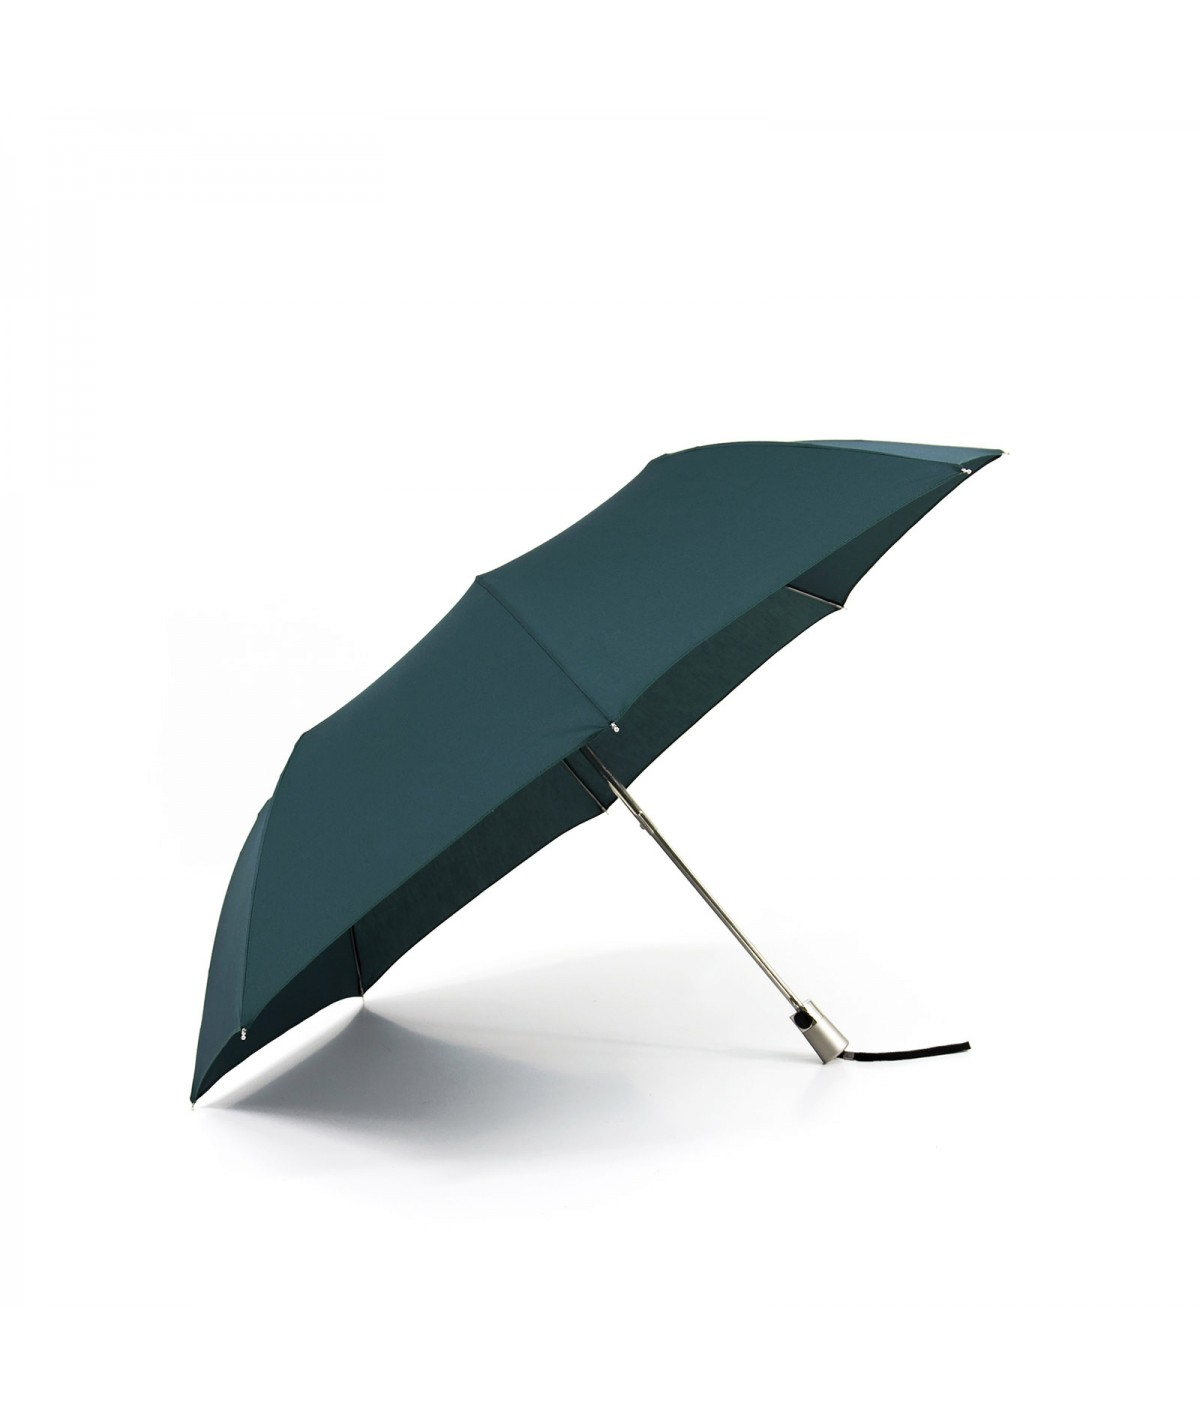 "→ Umbrella-Parasol - Limited Edition ""The United"" - Corsair Green handcrafted in France by Maison Pierre Vaux"